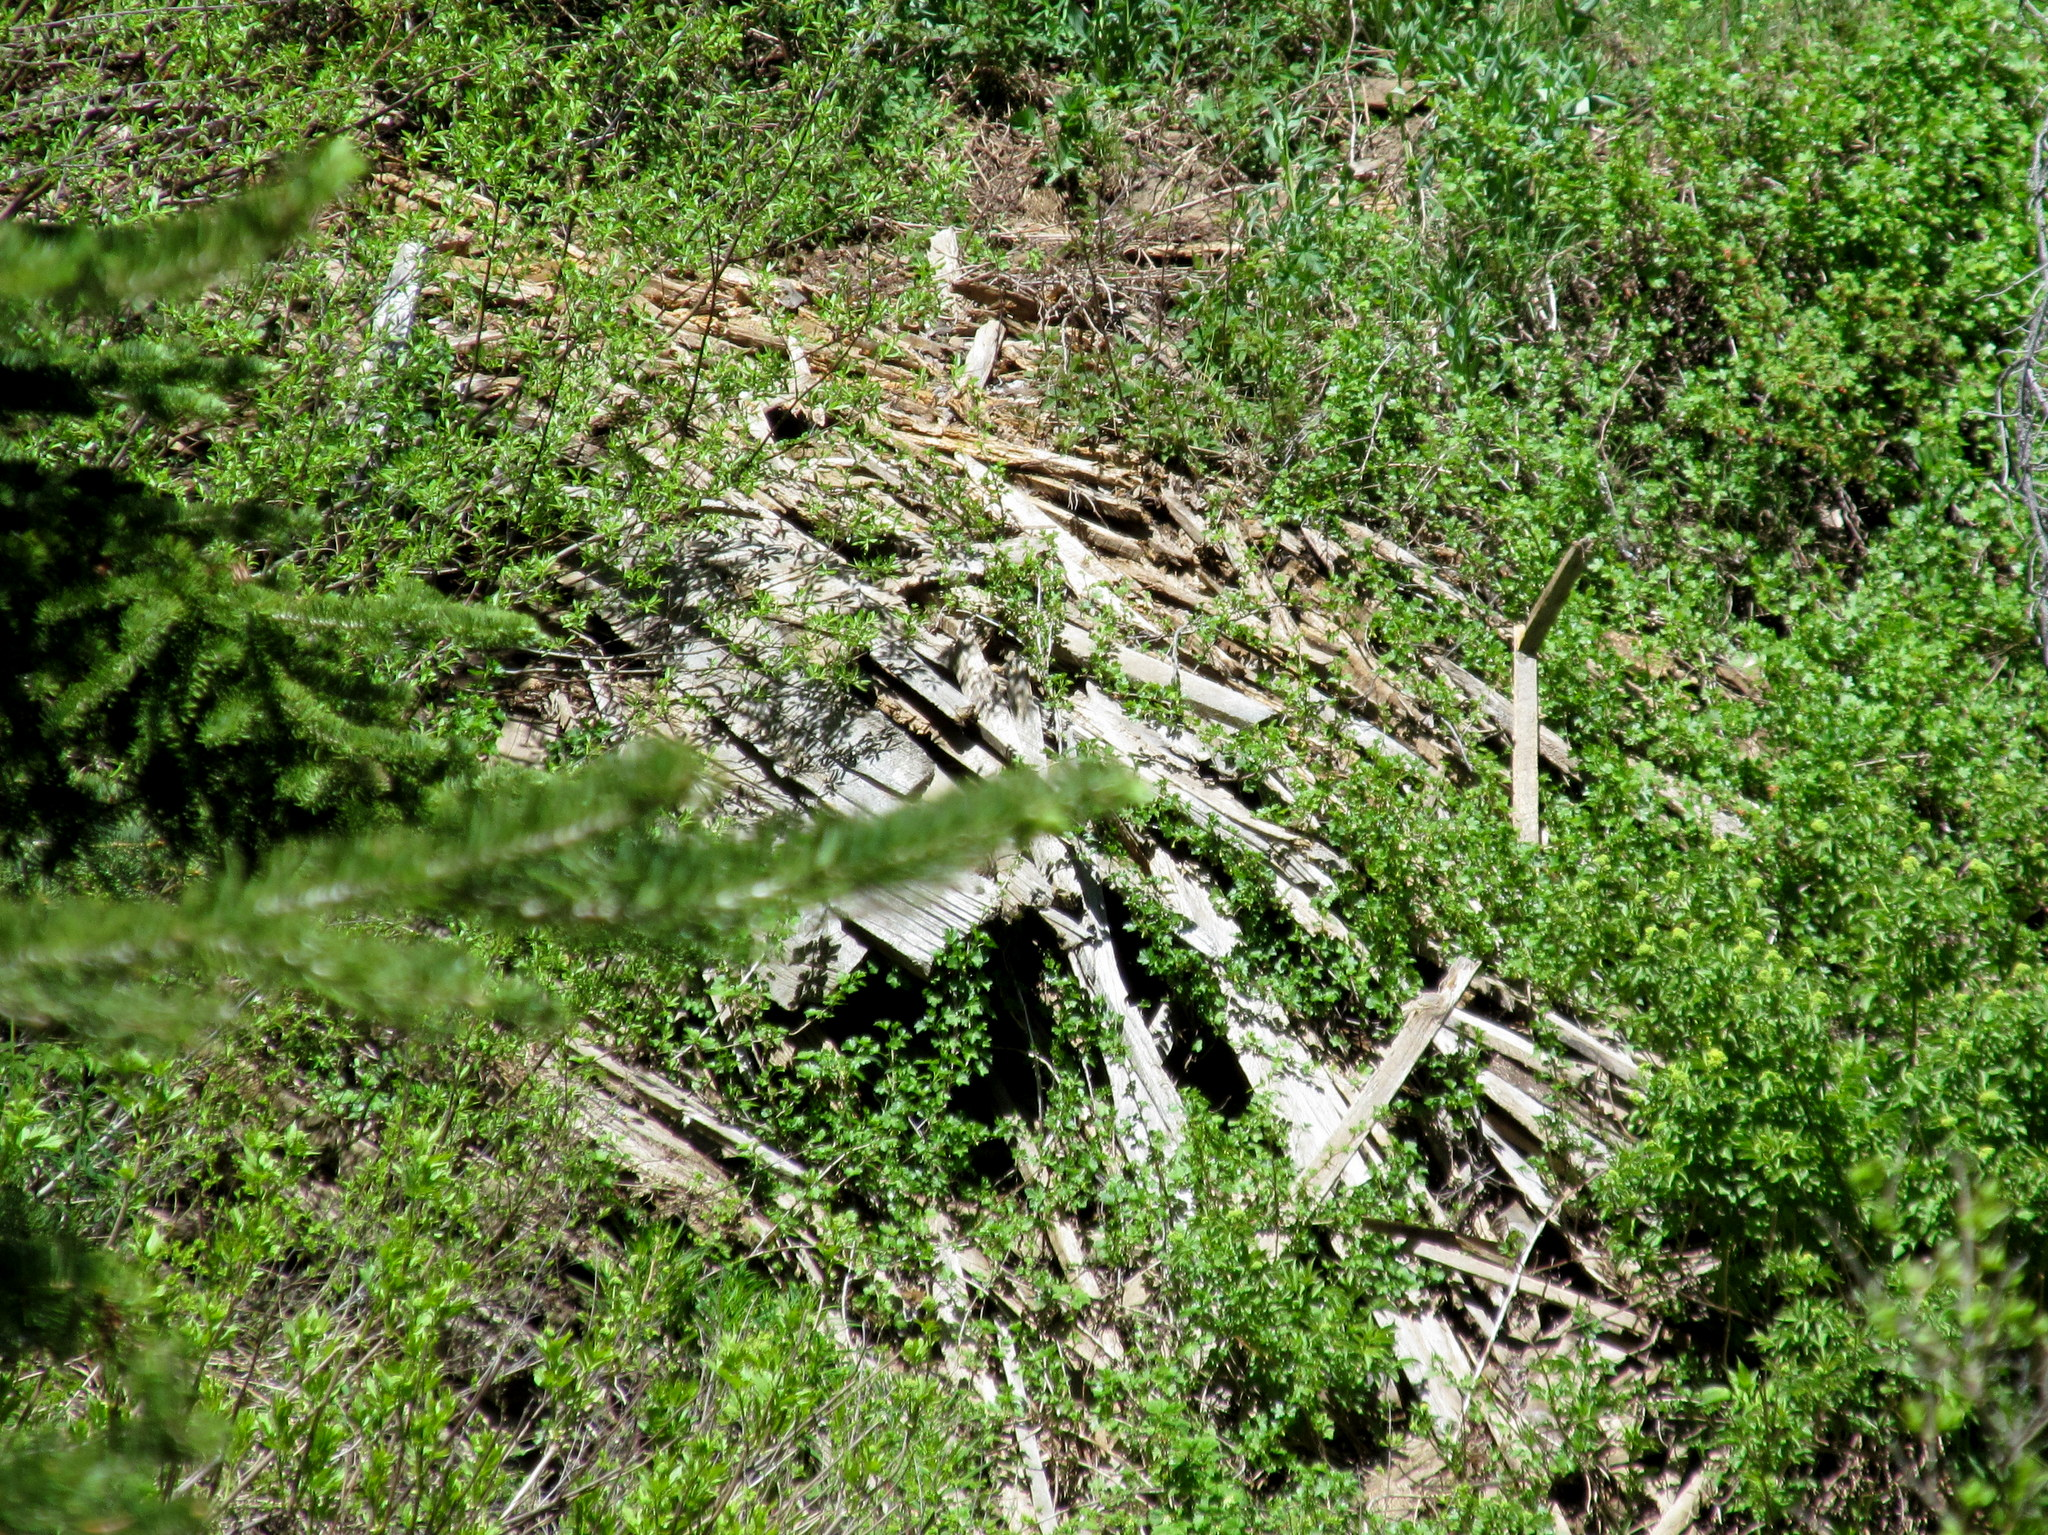 Photo: Another large scrap lumber pile